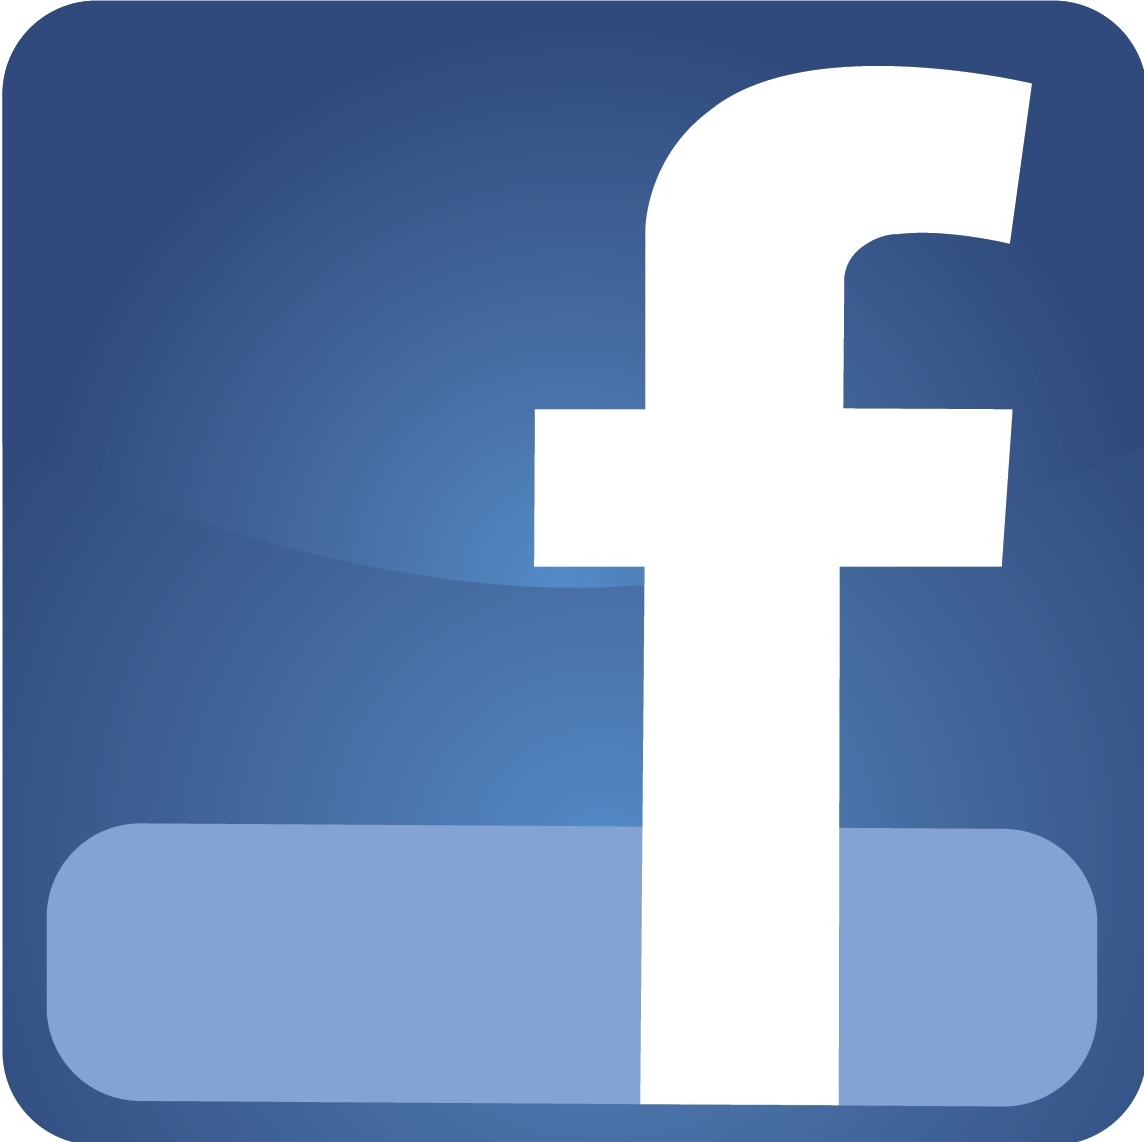 -created-by-adobe-social-to-launch-with-facebook-integration--the-drum-7.jpg